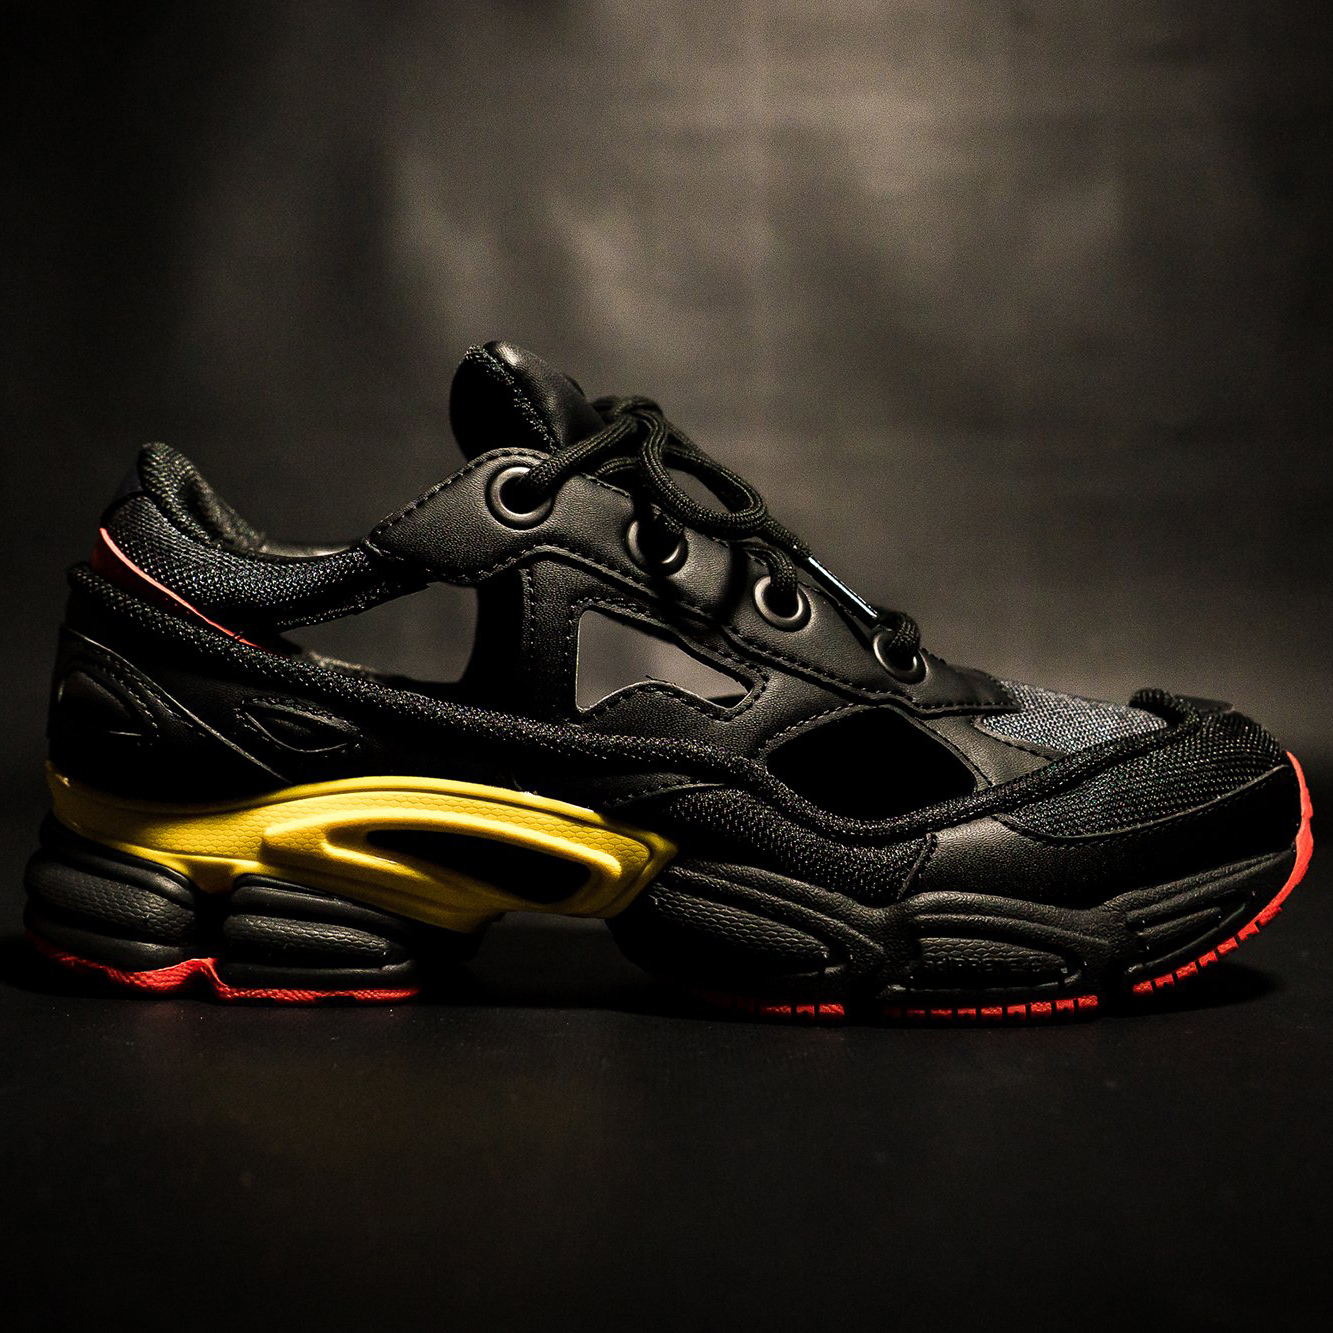 ffcc3f121c1f Adidas x Raf Simons Replicant Ozweego (Belgium  Black  Red  Yellow) Men